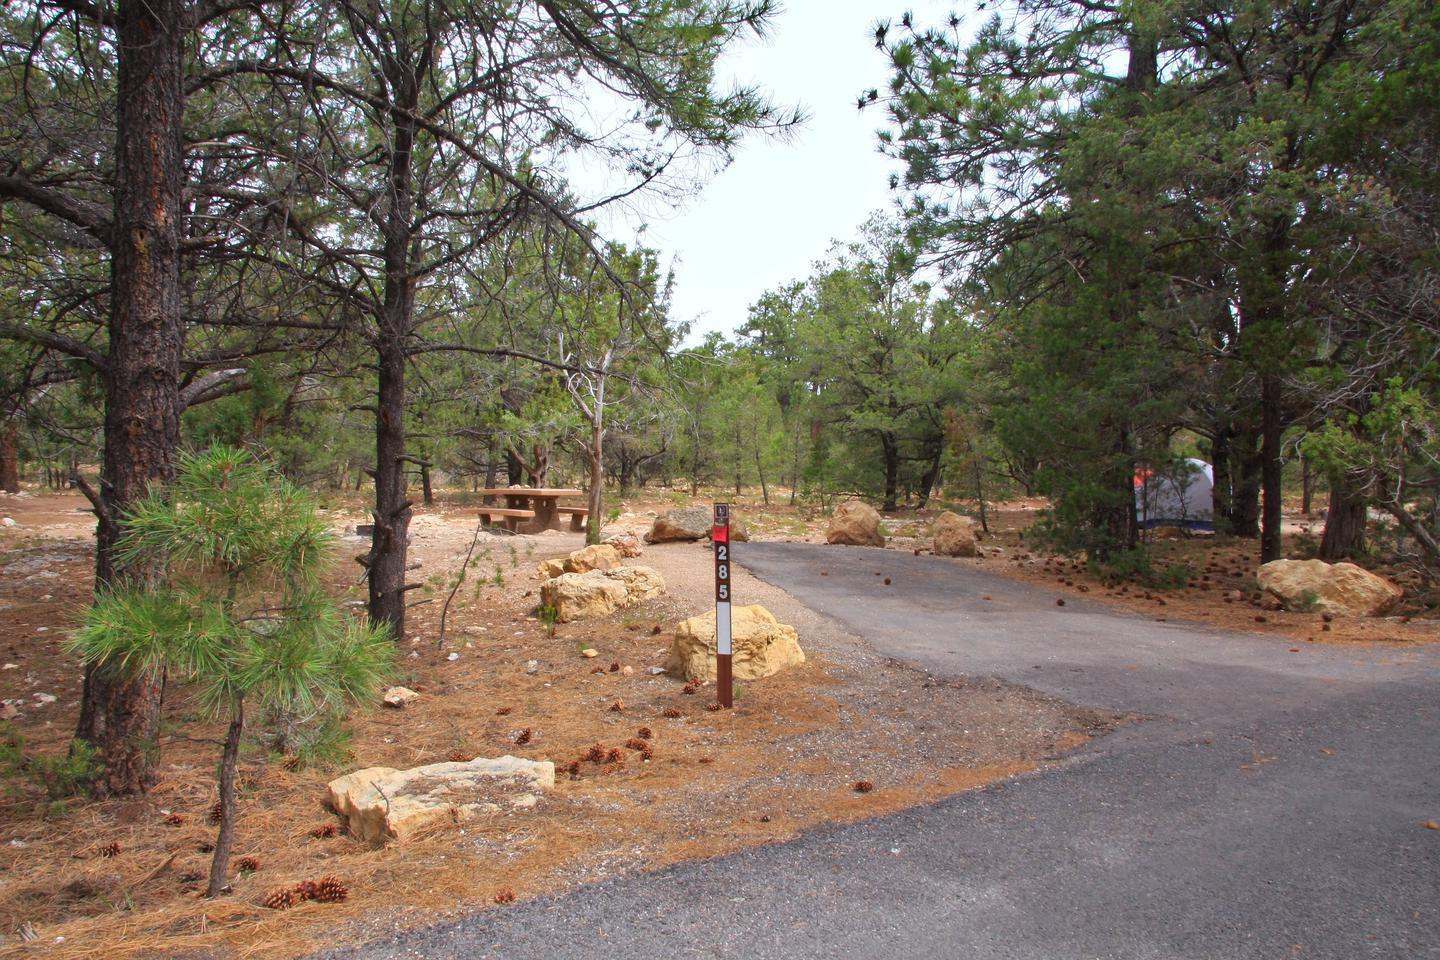 Picnic table, fire pit, and parking spot, Mather CampgroundPicnic table, fire pit, and parking spot for Pine Loop 285, Mather Campground